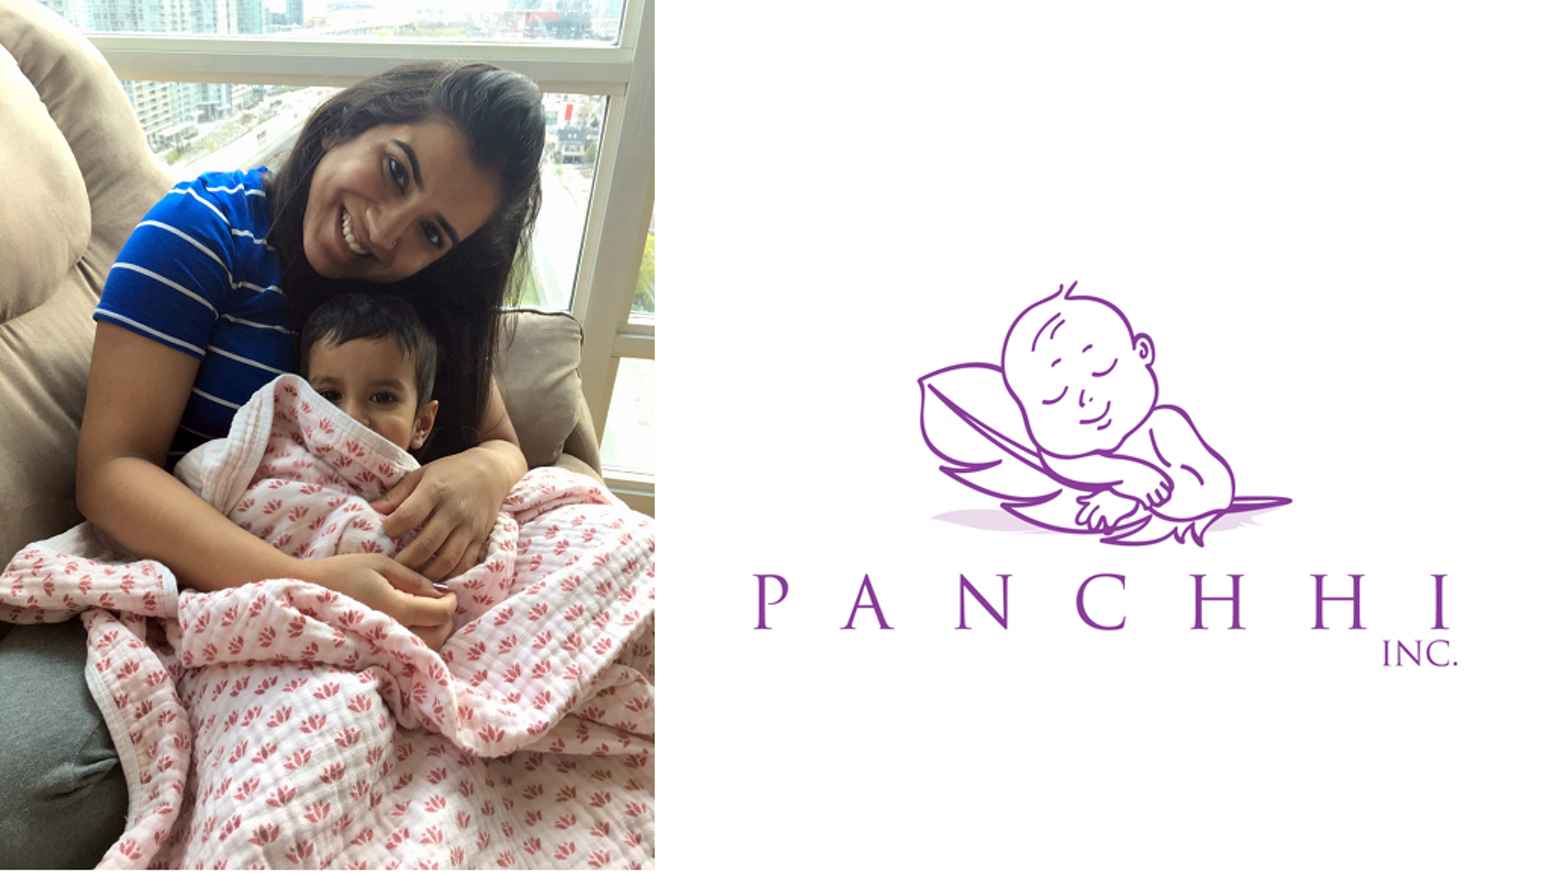 Panchhi: Herb enriched organic linens for our little ones